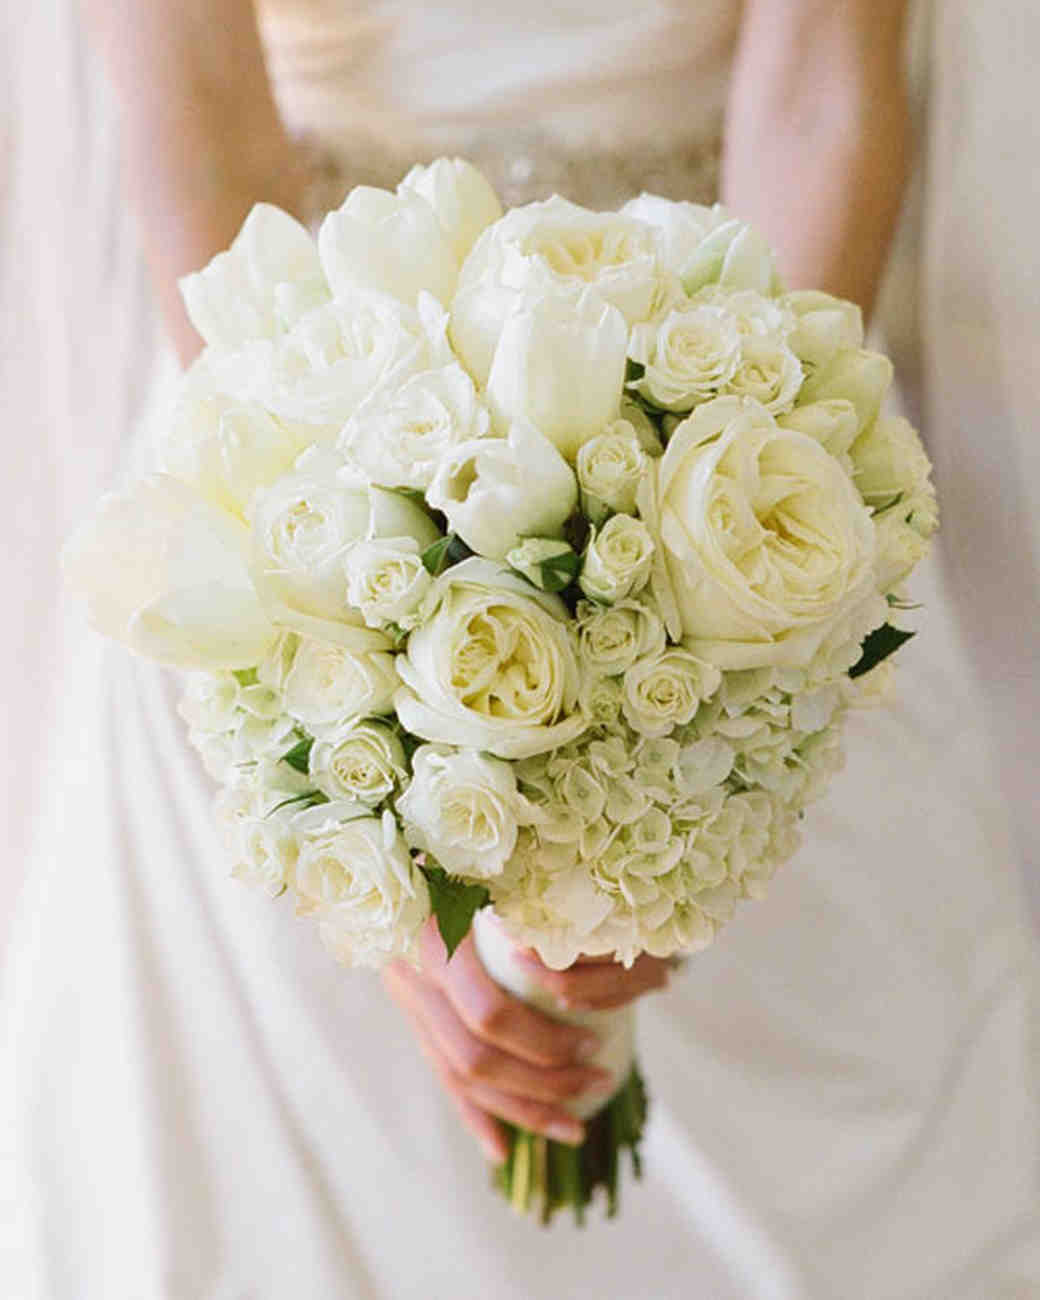 rw_0111_julia_nick_bouquet.jpg